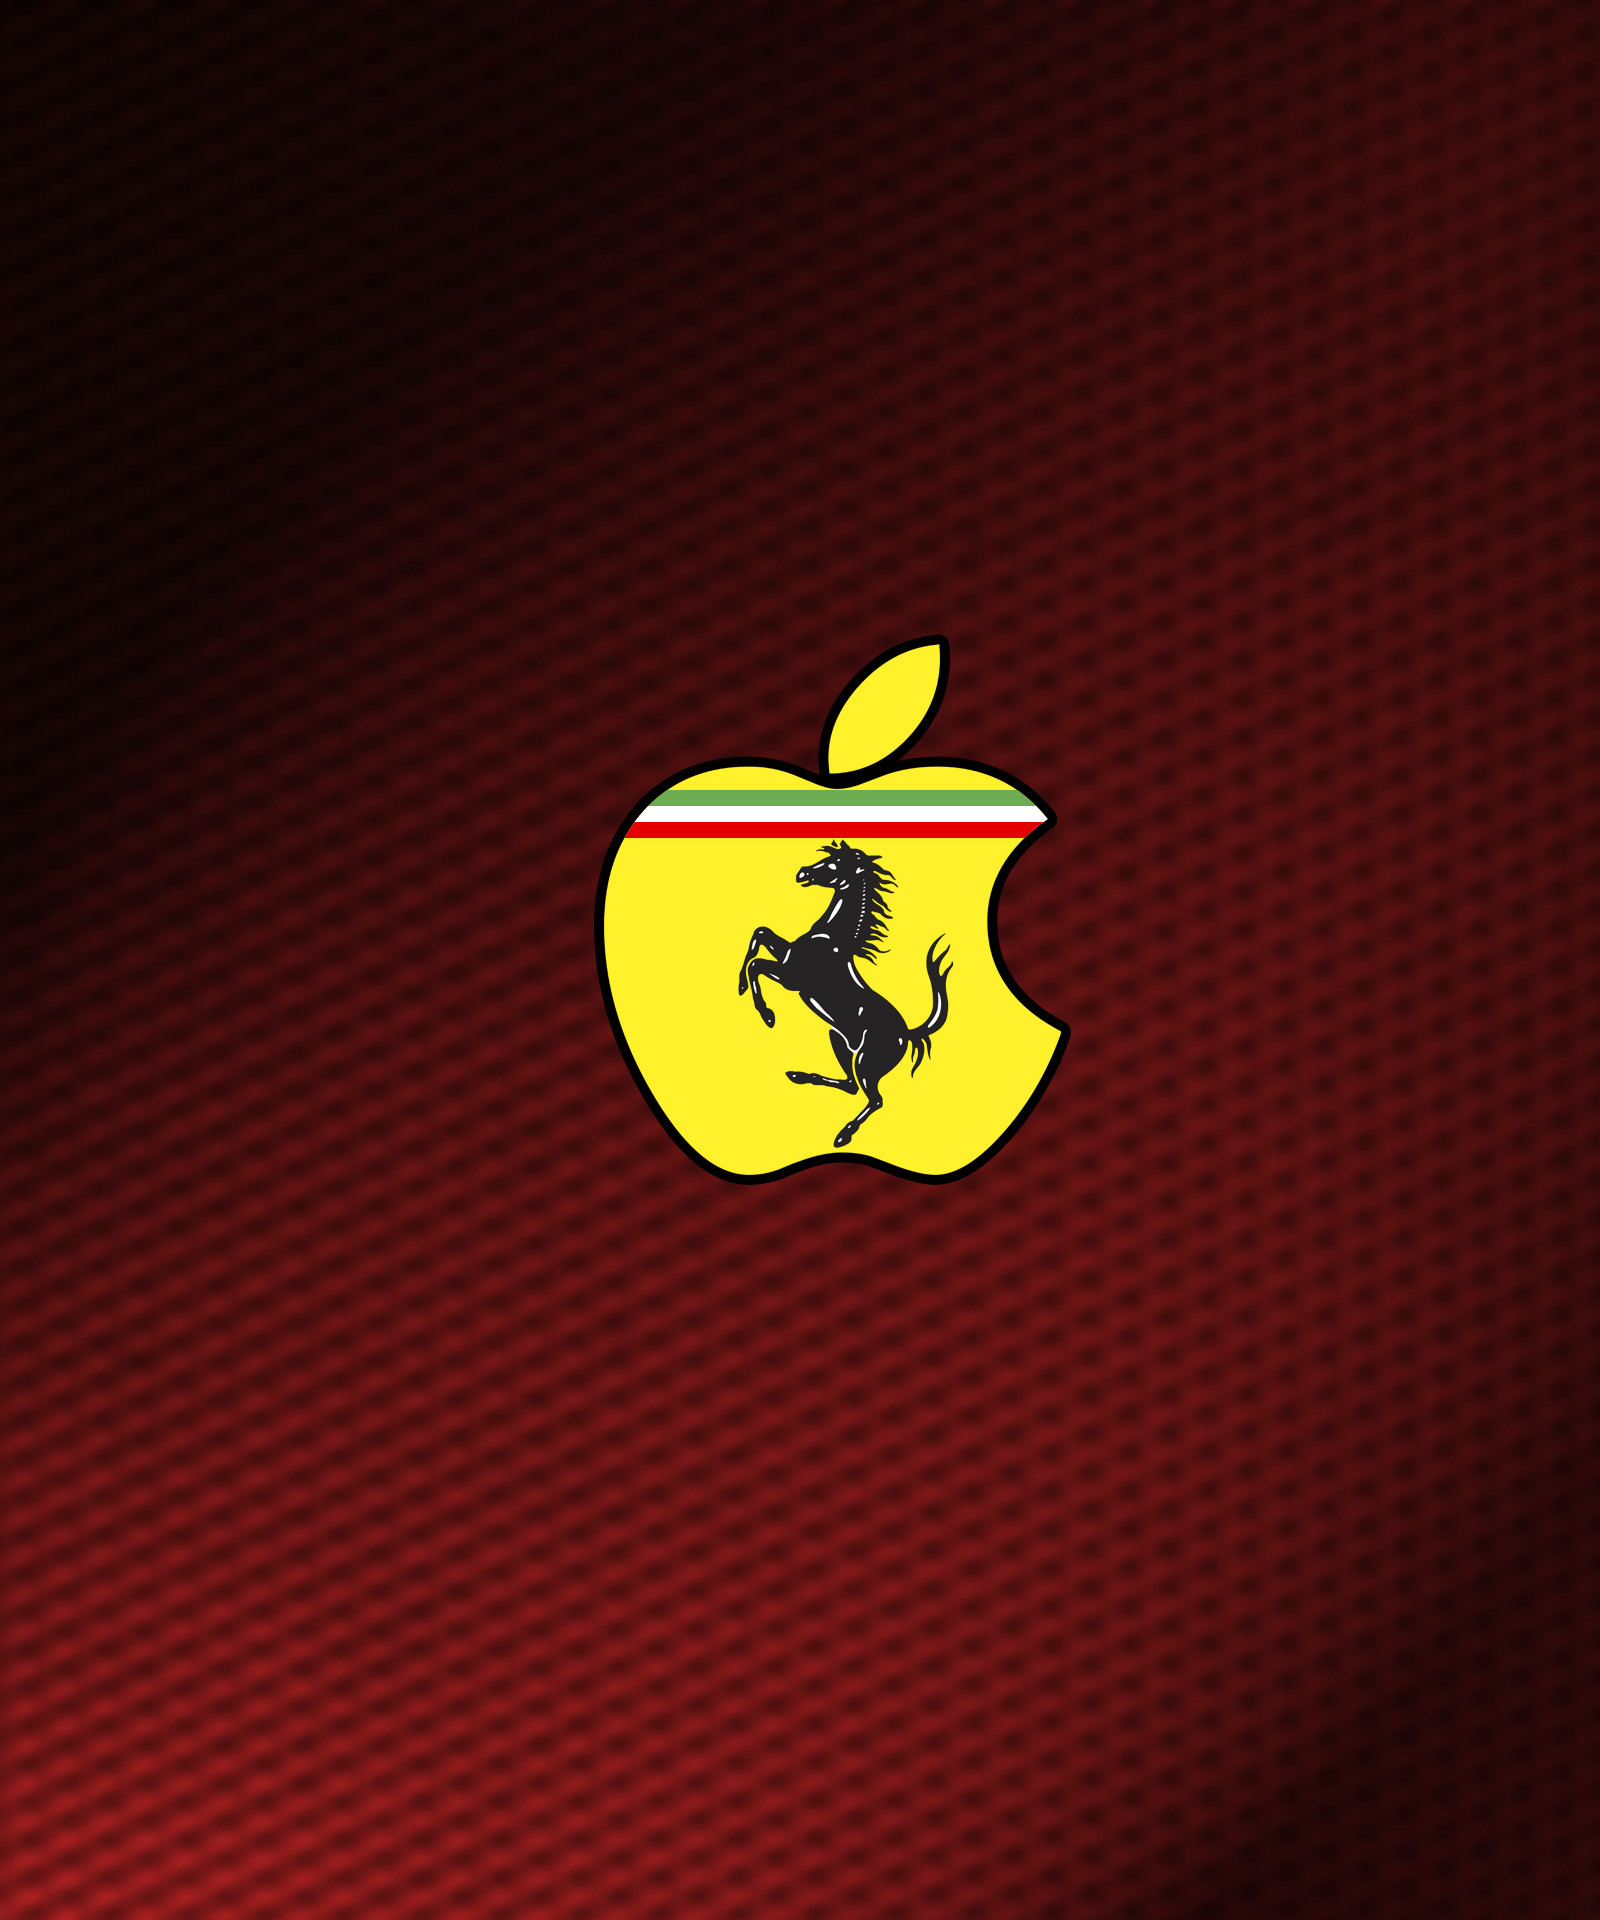 1920x1200 Red Apple Logo Backgrounds For Laptop 1920 X 1200 319 KB